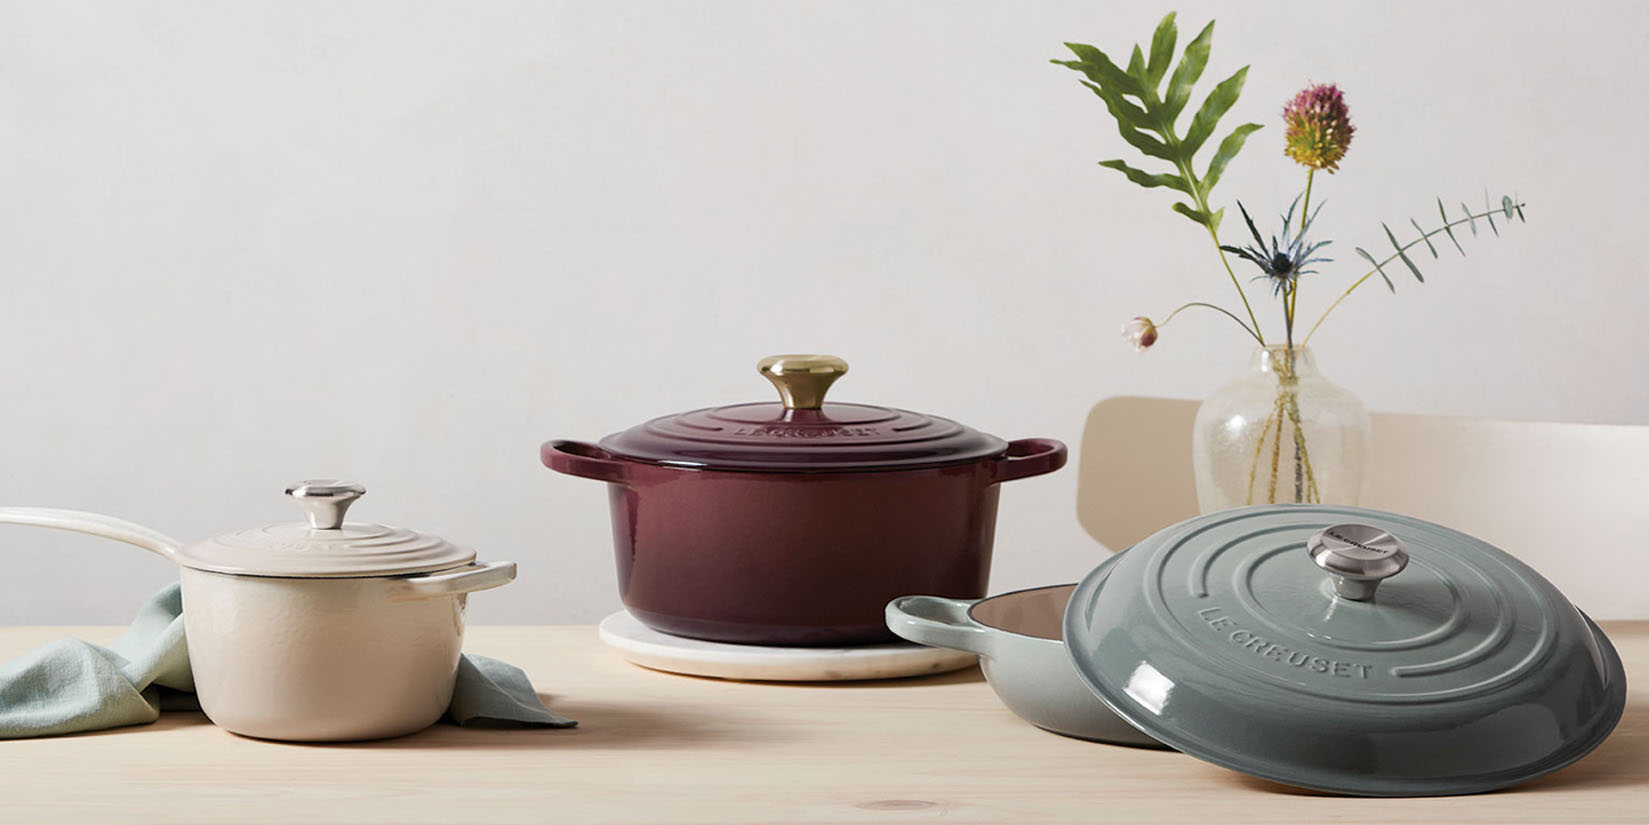 Le Creuset's New Calming Spring Colors have arrived with neutral perfection